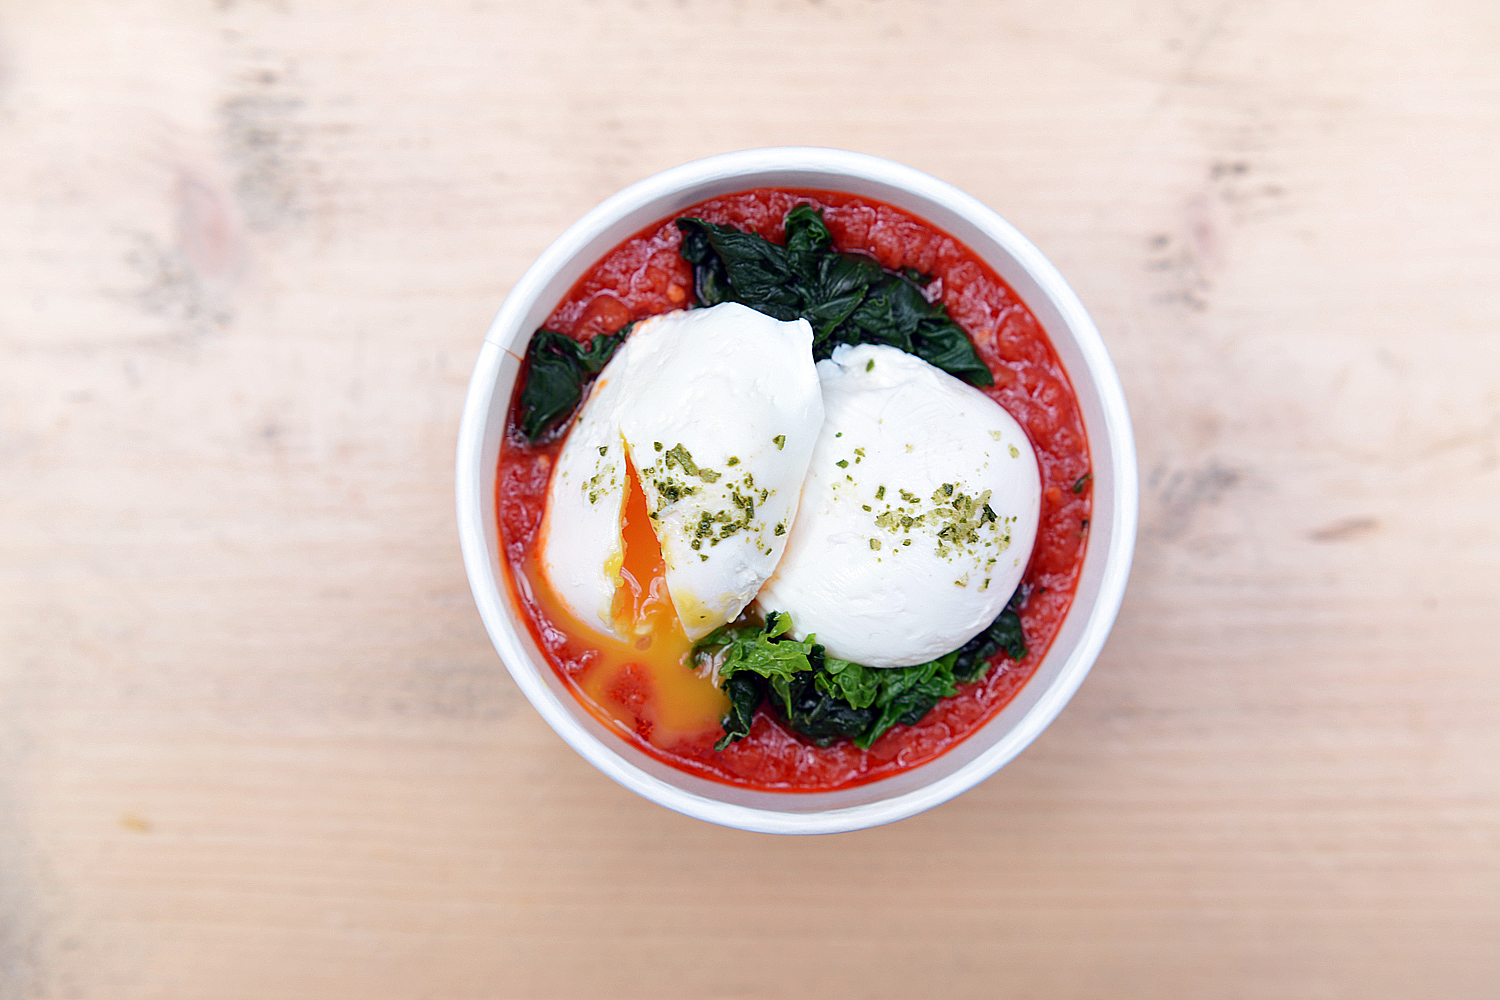 Breakfast - Poached eggs with tomato compote (1).jpg